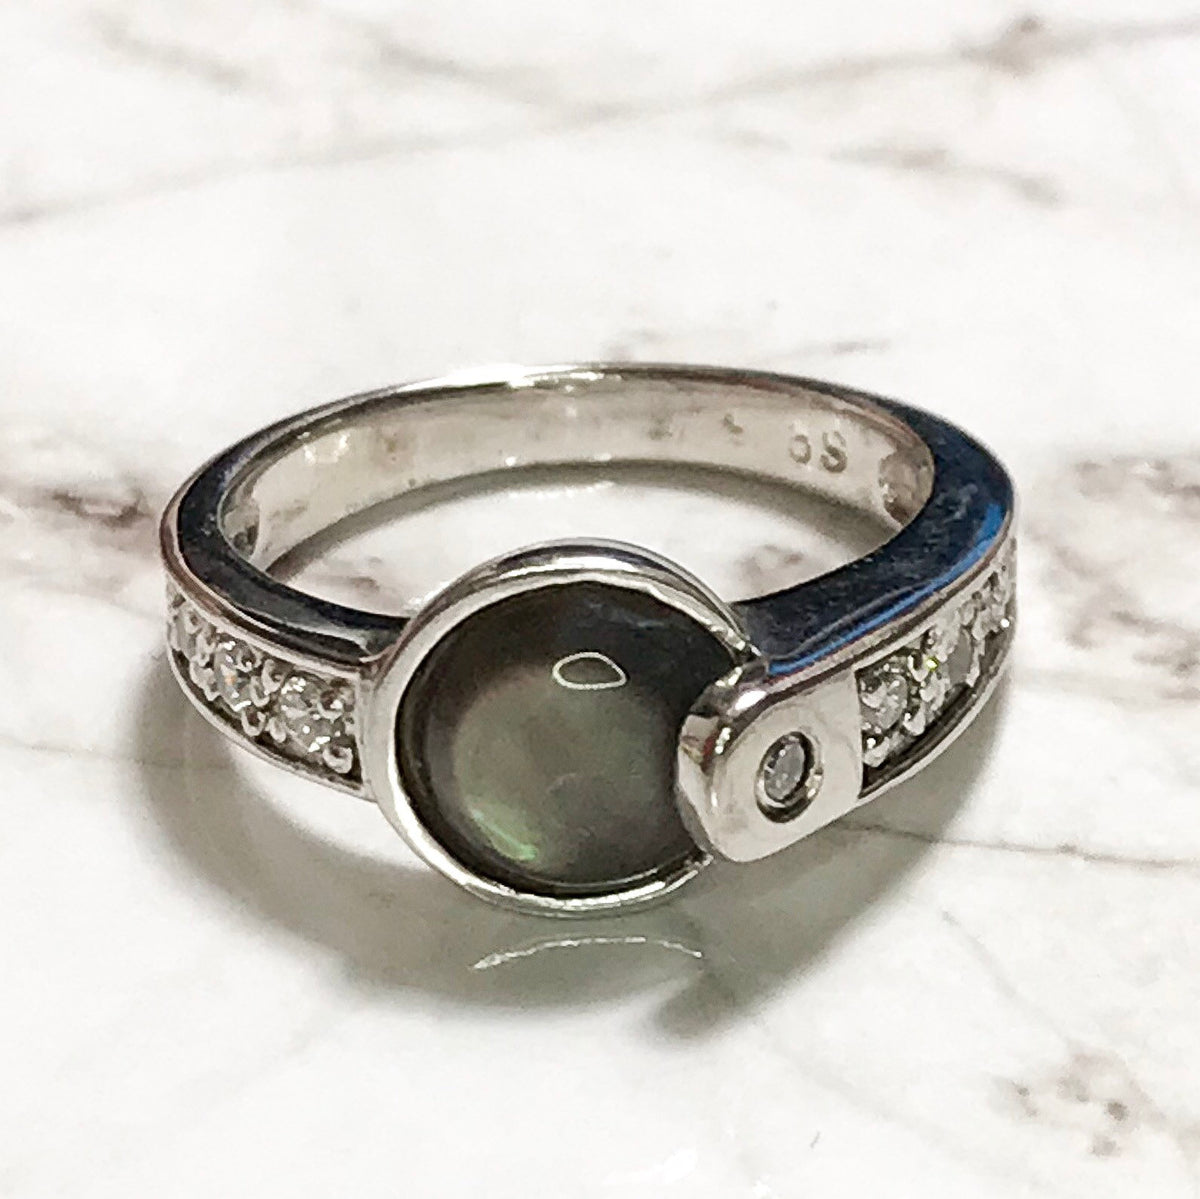 NEW 14k White Gold Layered On Sterling Silver Circle Black-Navy Colored Stone Ring